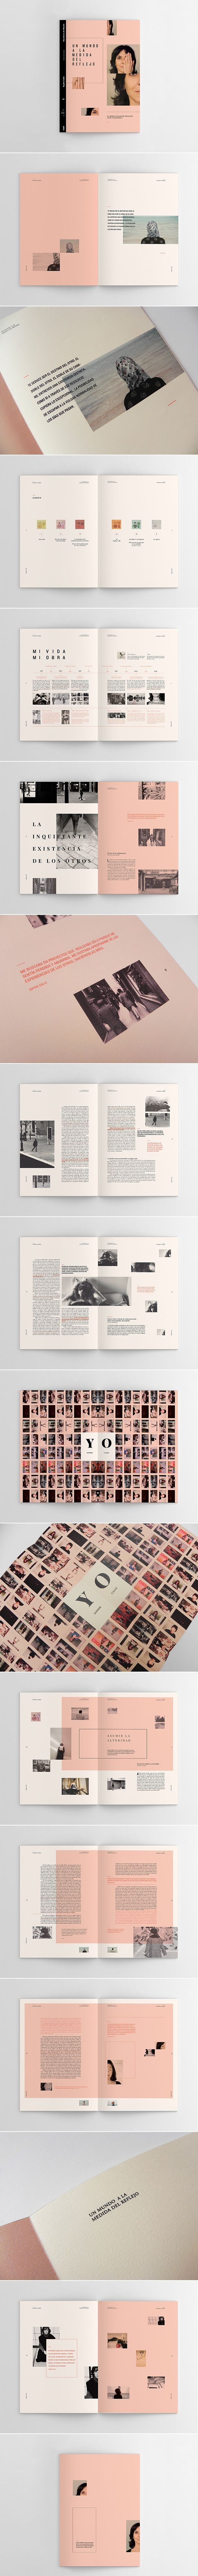 Cover & Layout / Sophie Calle - Hacedores de Mundo on Behance